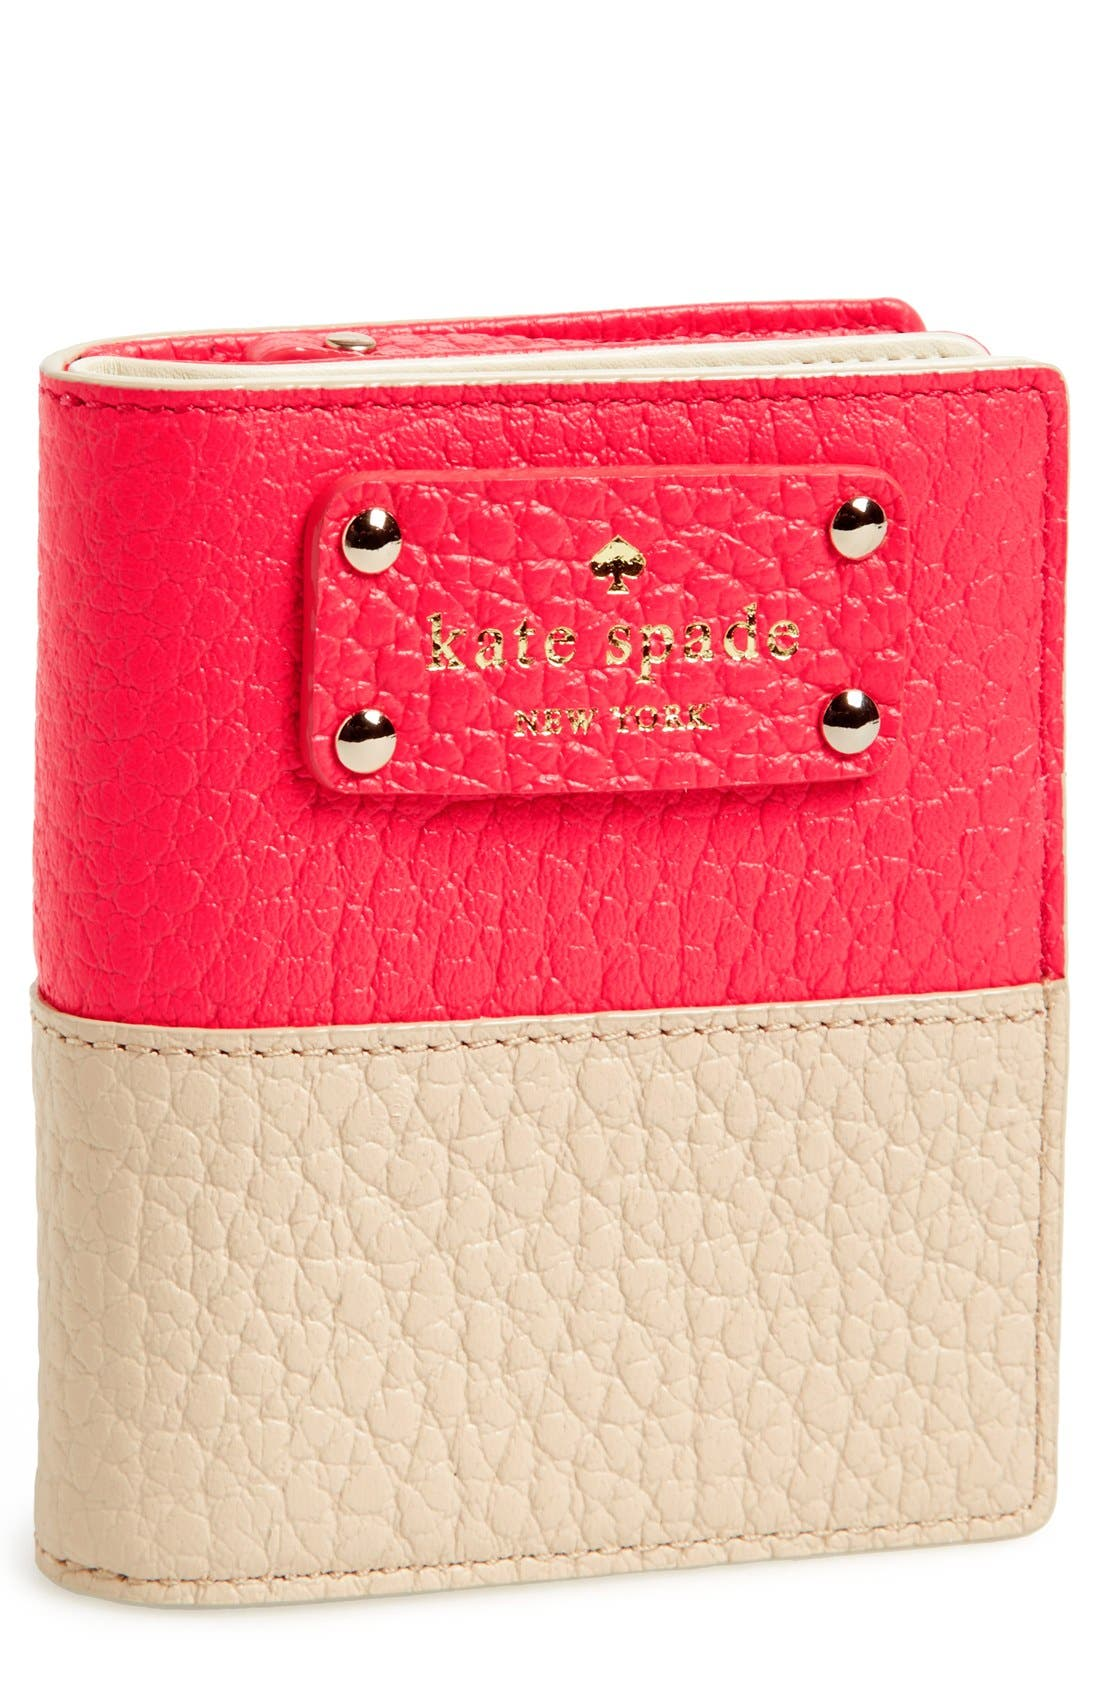 Main Image - kate spade new york 'grove court - buttercup' leather wallet